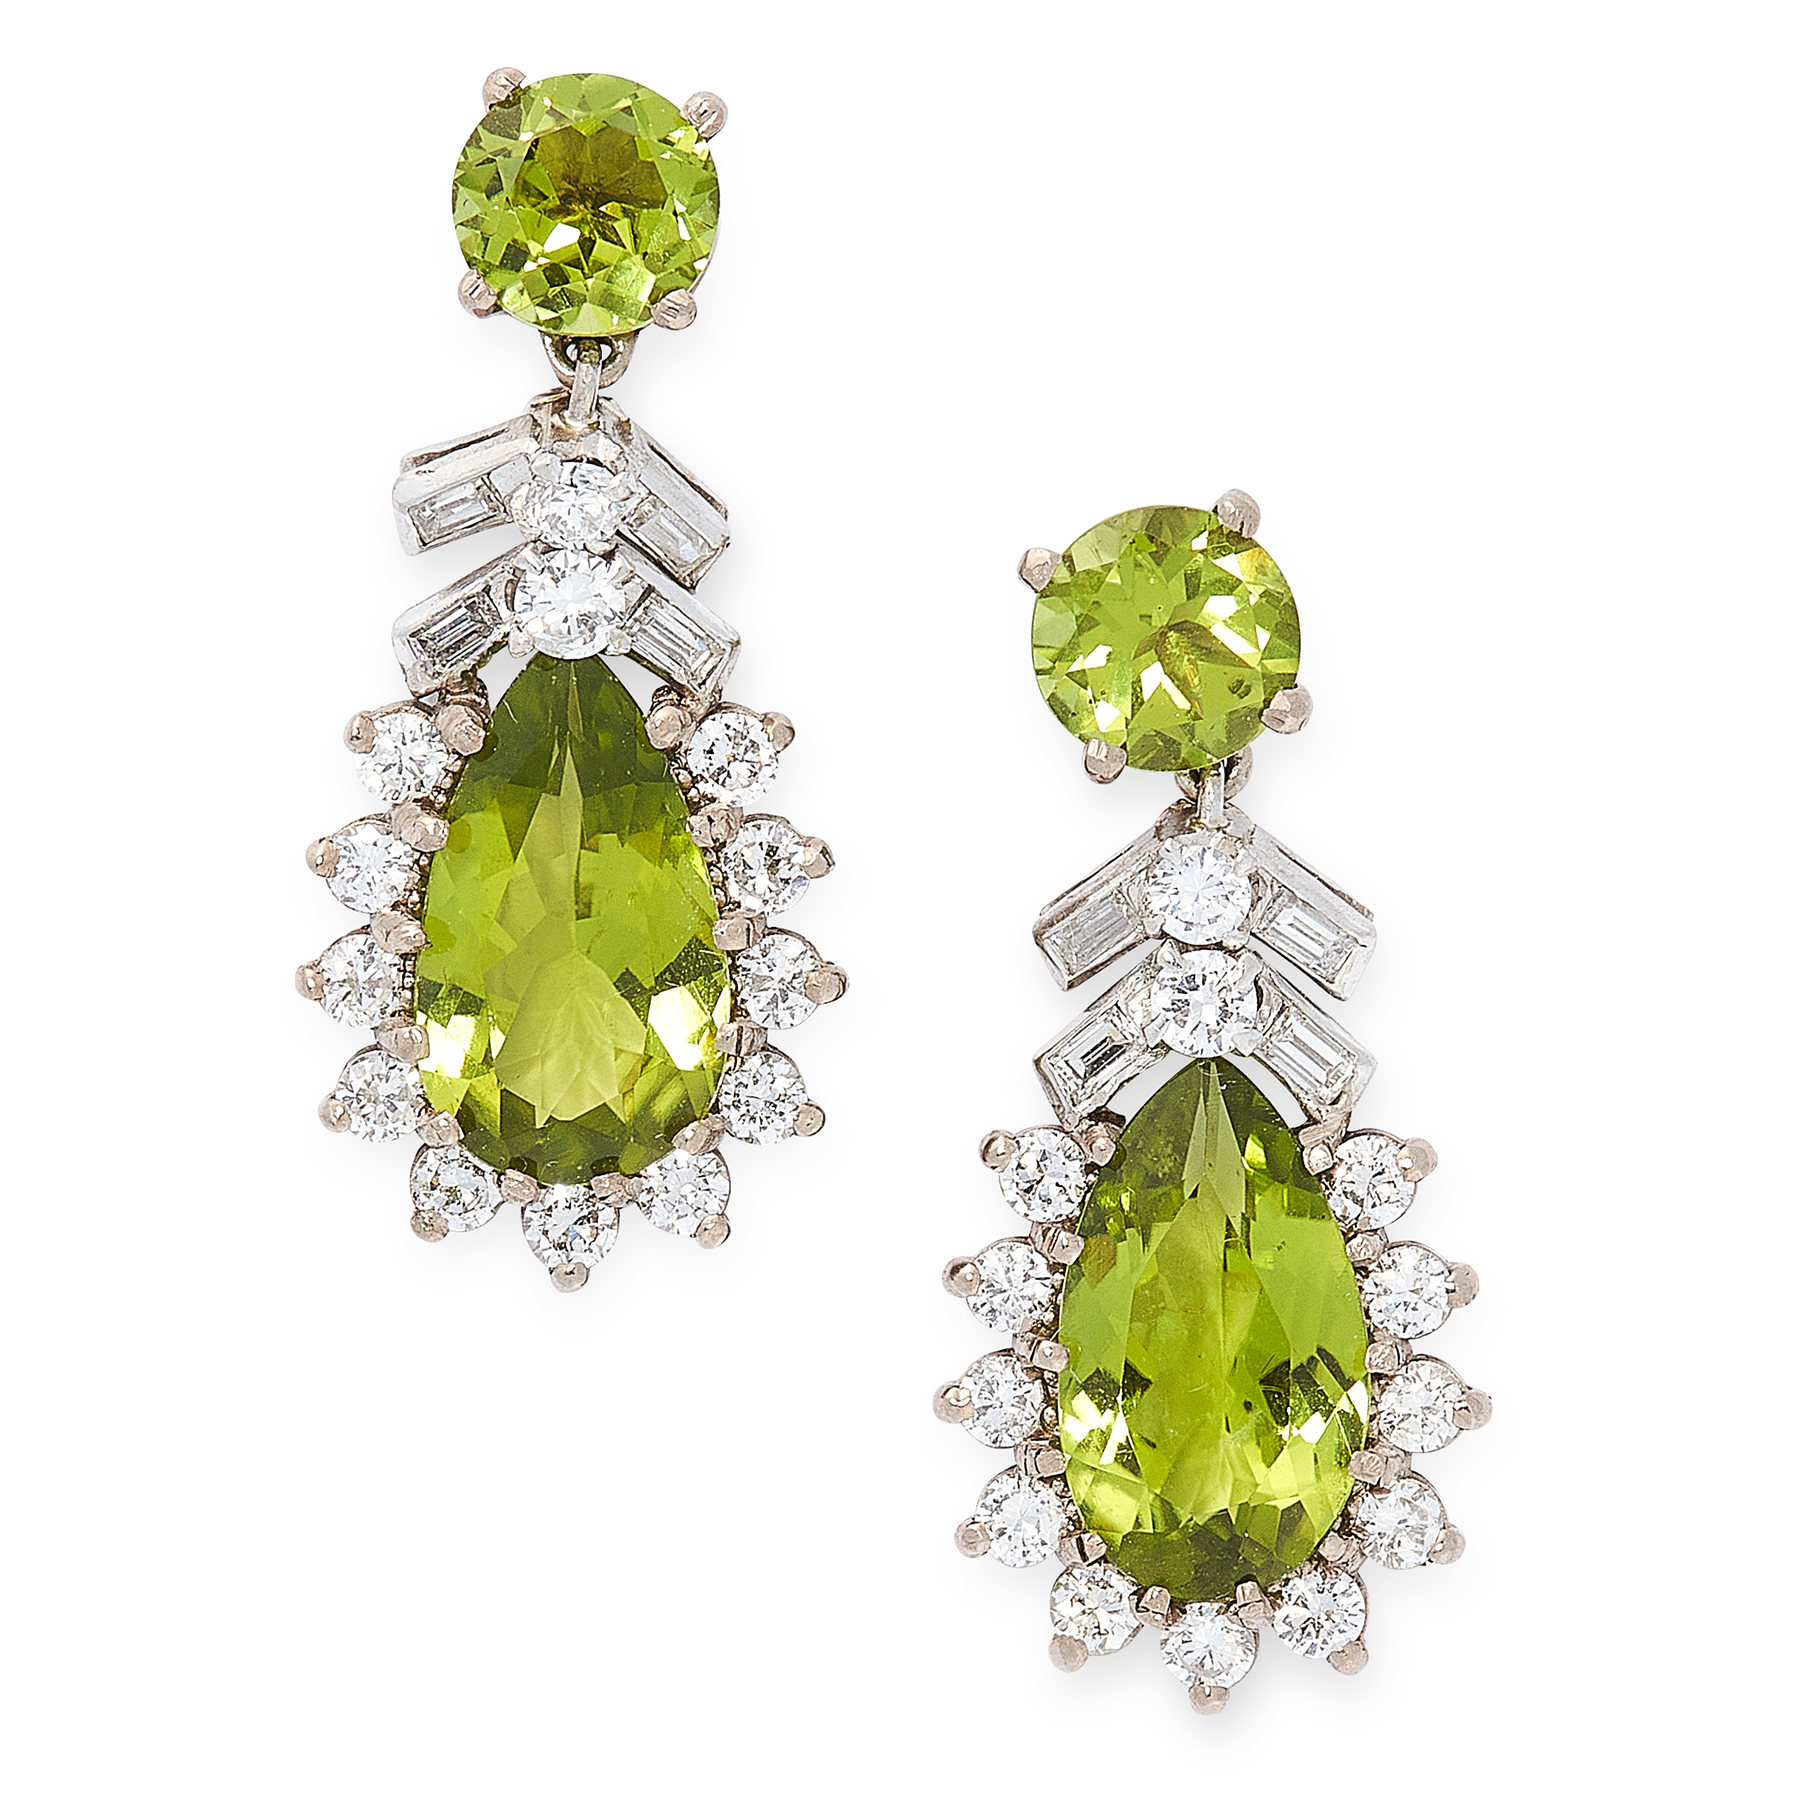 A PAIR OF PERIDOT AND DIAMOND EARRINGS in 18ct white gold, each set with a pear cut peridot